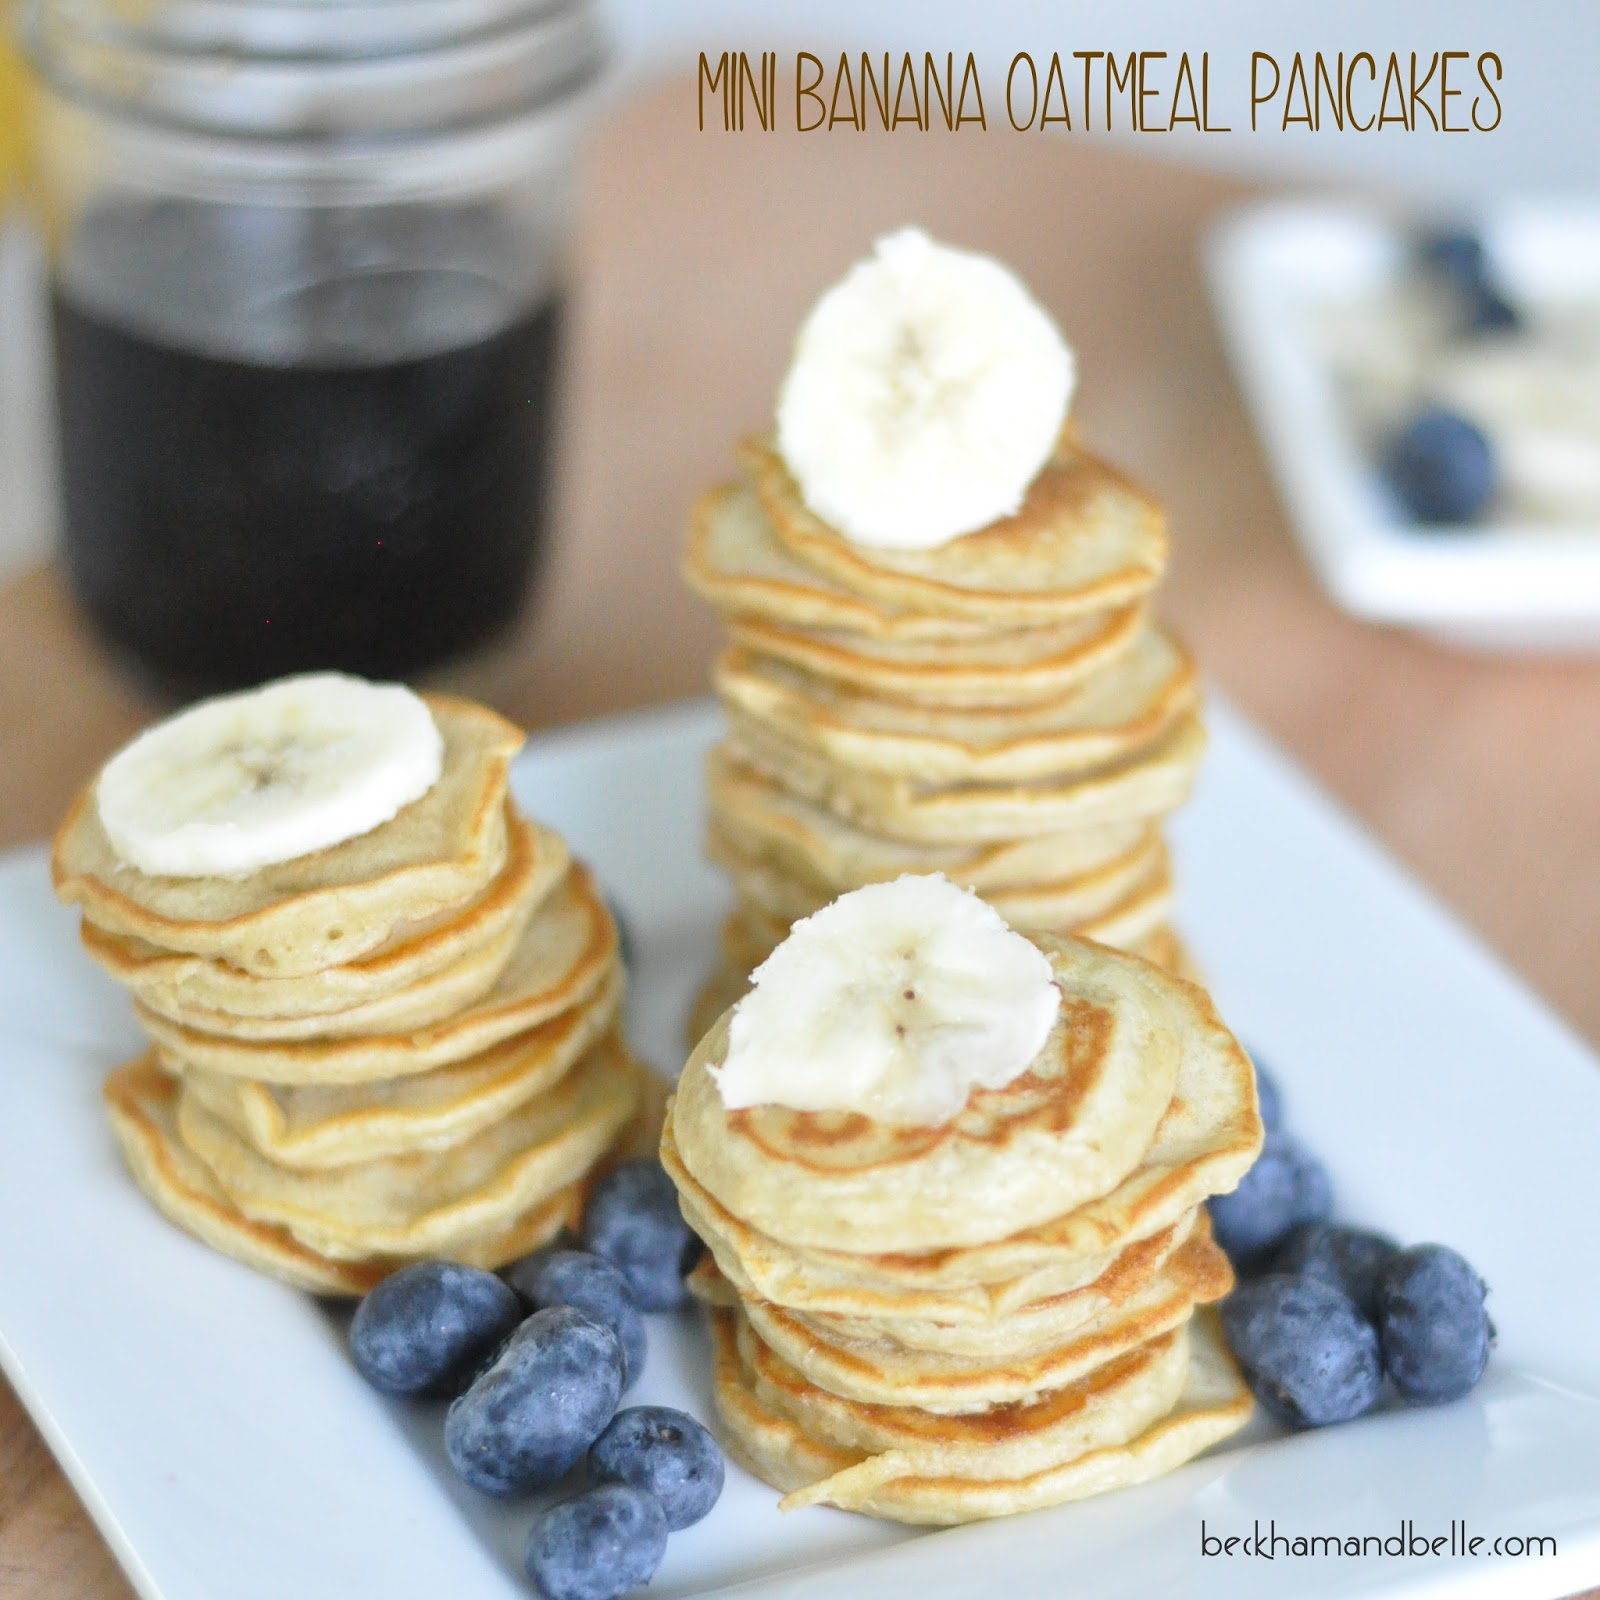 Mini Banana Oatmeal Pancakes